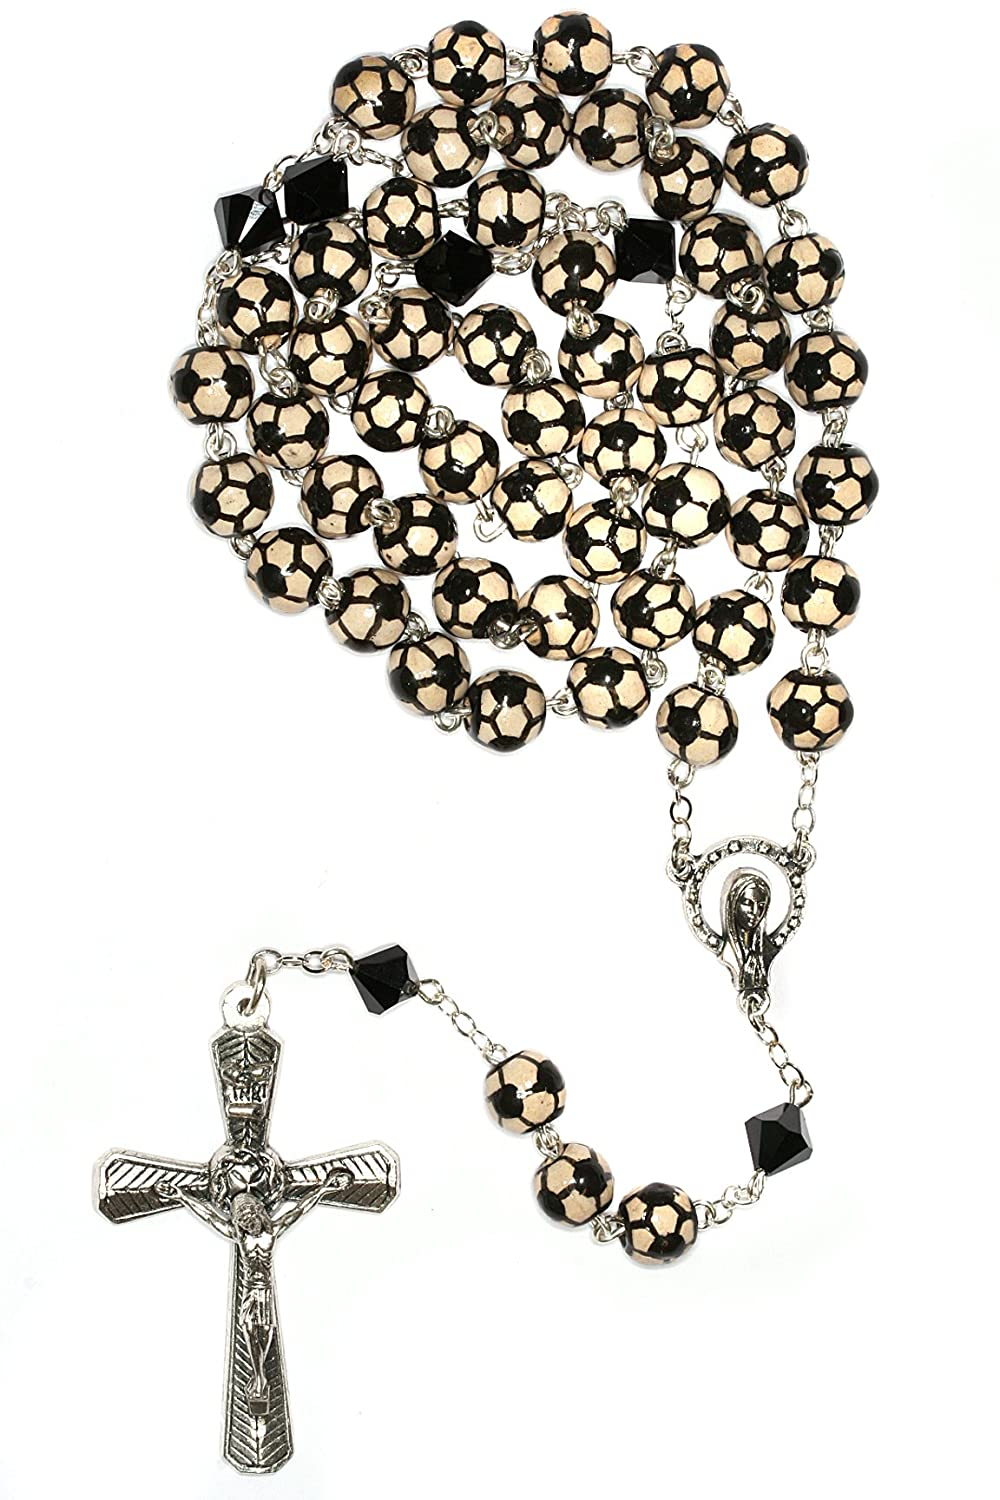 Futbol Rosary Soccer Rosary Sport Rosary made with Ceramic Sport beads and Swarovski Crystal elements